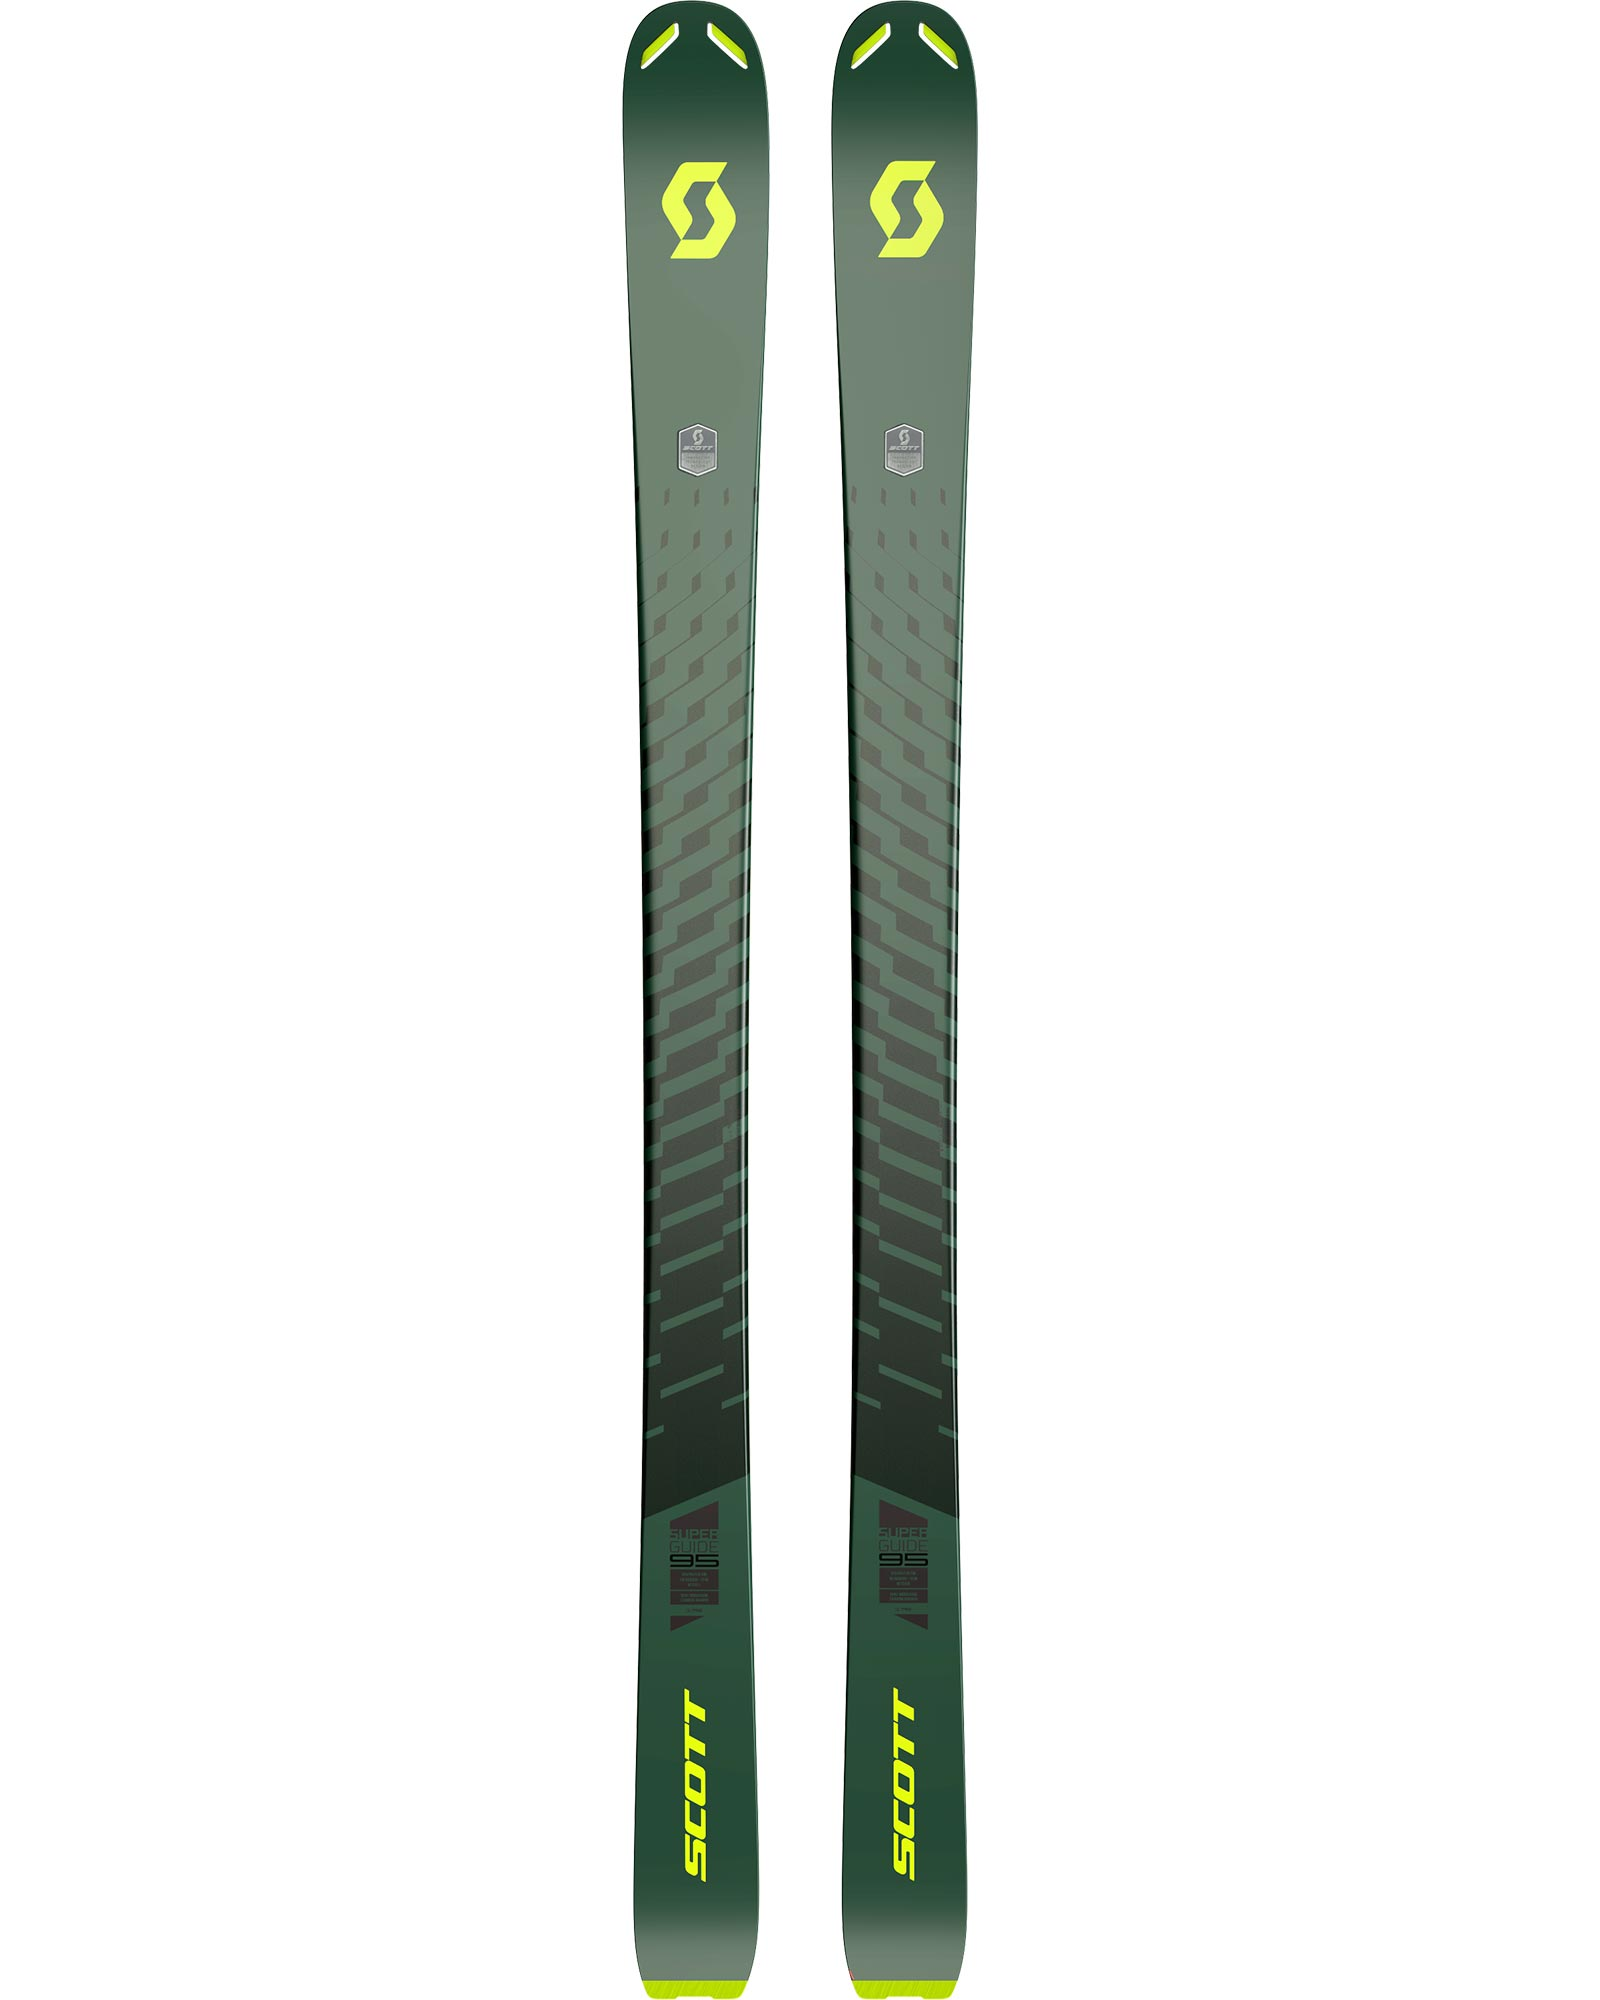 Scott Superguide 95 Backcountry Skis 2020 / 2021 0